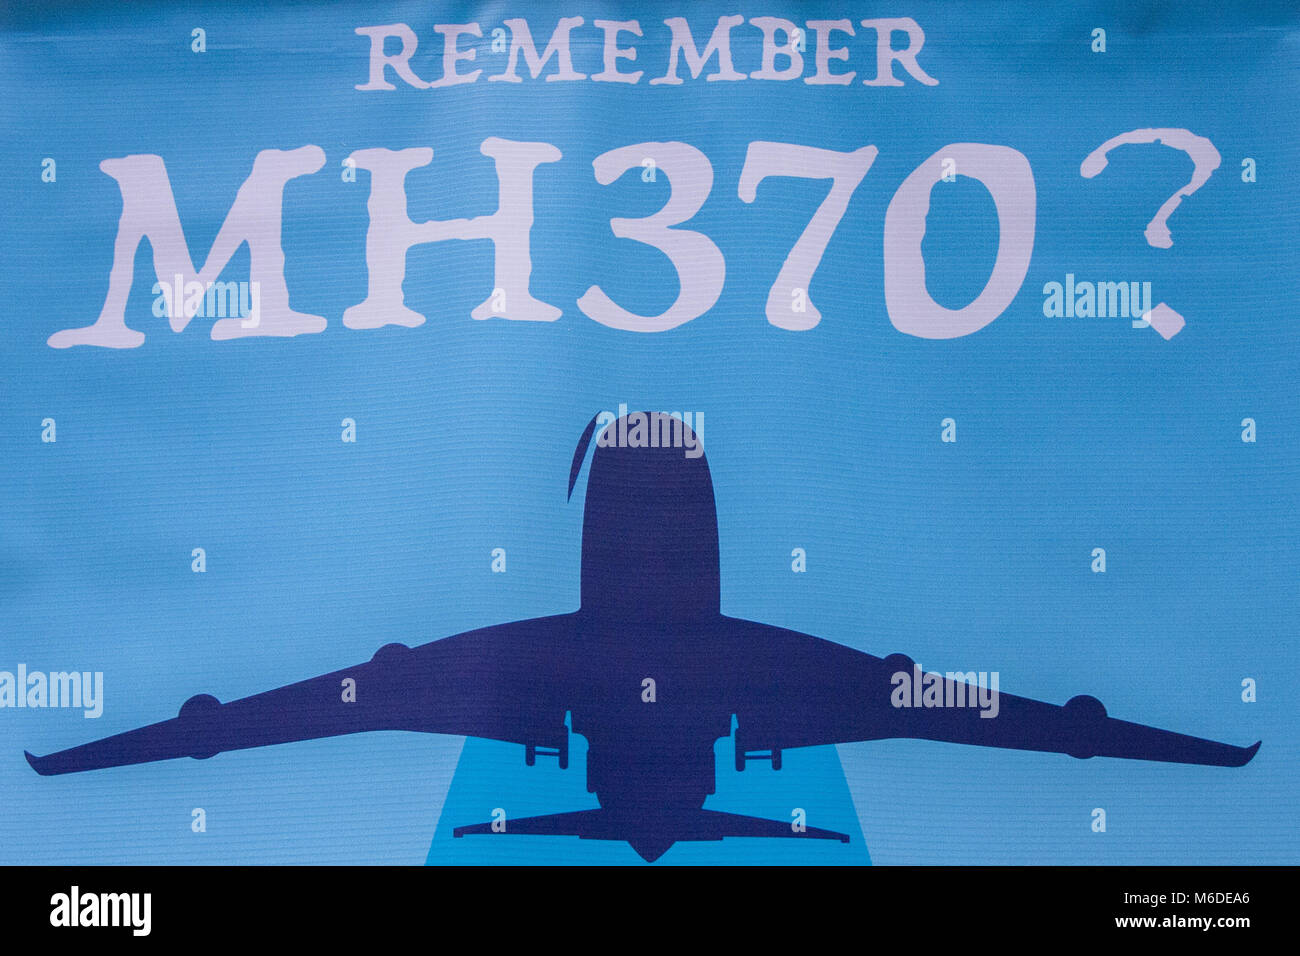 "Kuala Lumpur, KL, Malaysia. 3rd Mar, 2018. A MH370 poster seen at the 4th Annual MH370 Remembrance event. Hundreds of people had gathered at the ""Remember MH370? It's Not History, It's Our Future"""" is the 4th Annual MH370 Remembrance event organised by VOICE370 the MH370 Family Support Group held at Publika, Kuala Lumpur on 3rd March 2018. Credit: ZUMA Press, Inc./Alamy Live News Stock Photo"